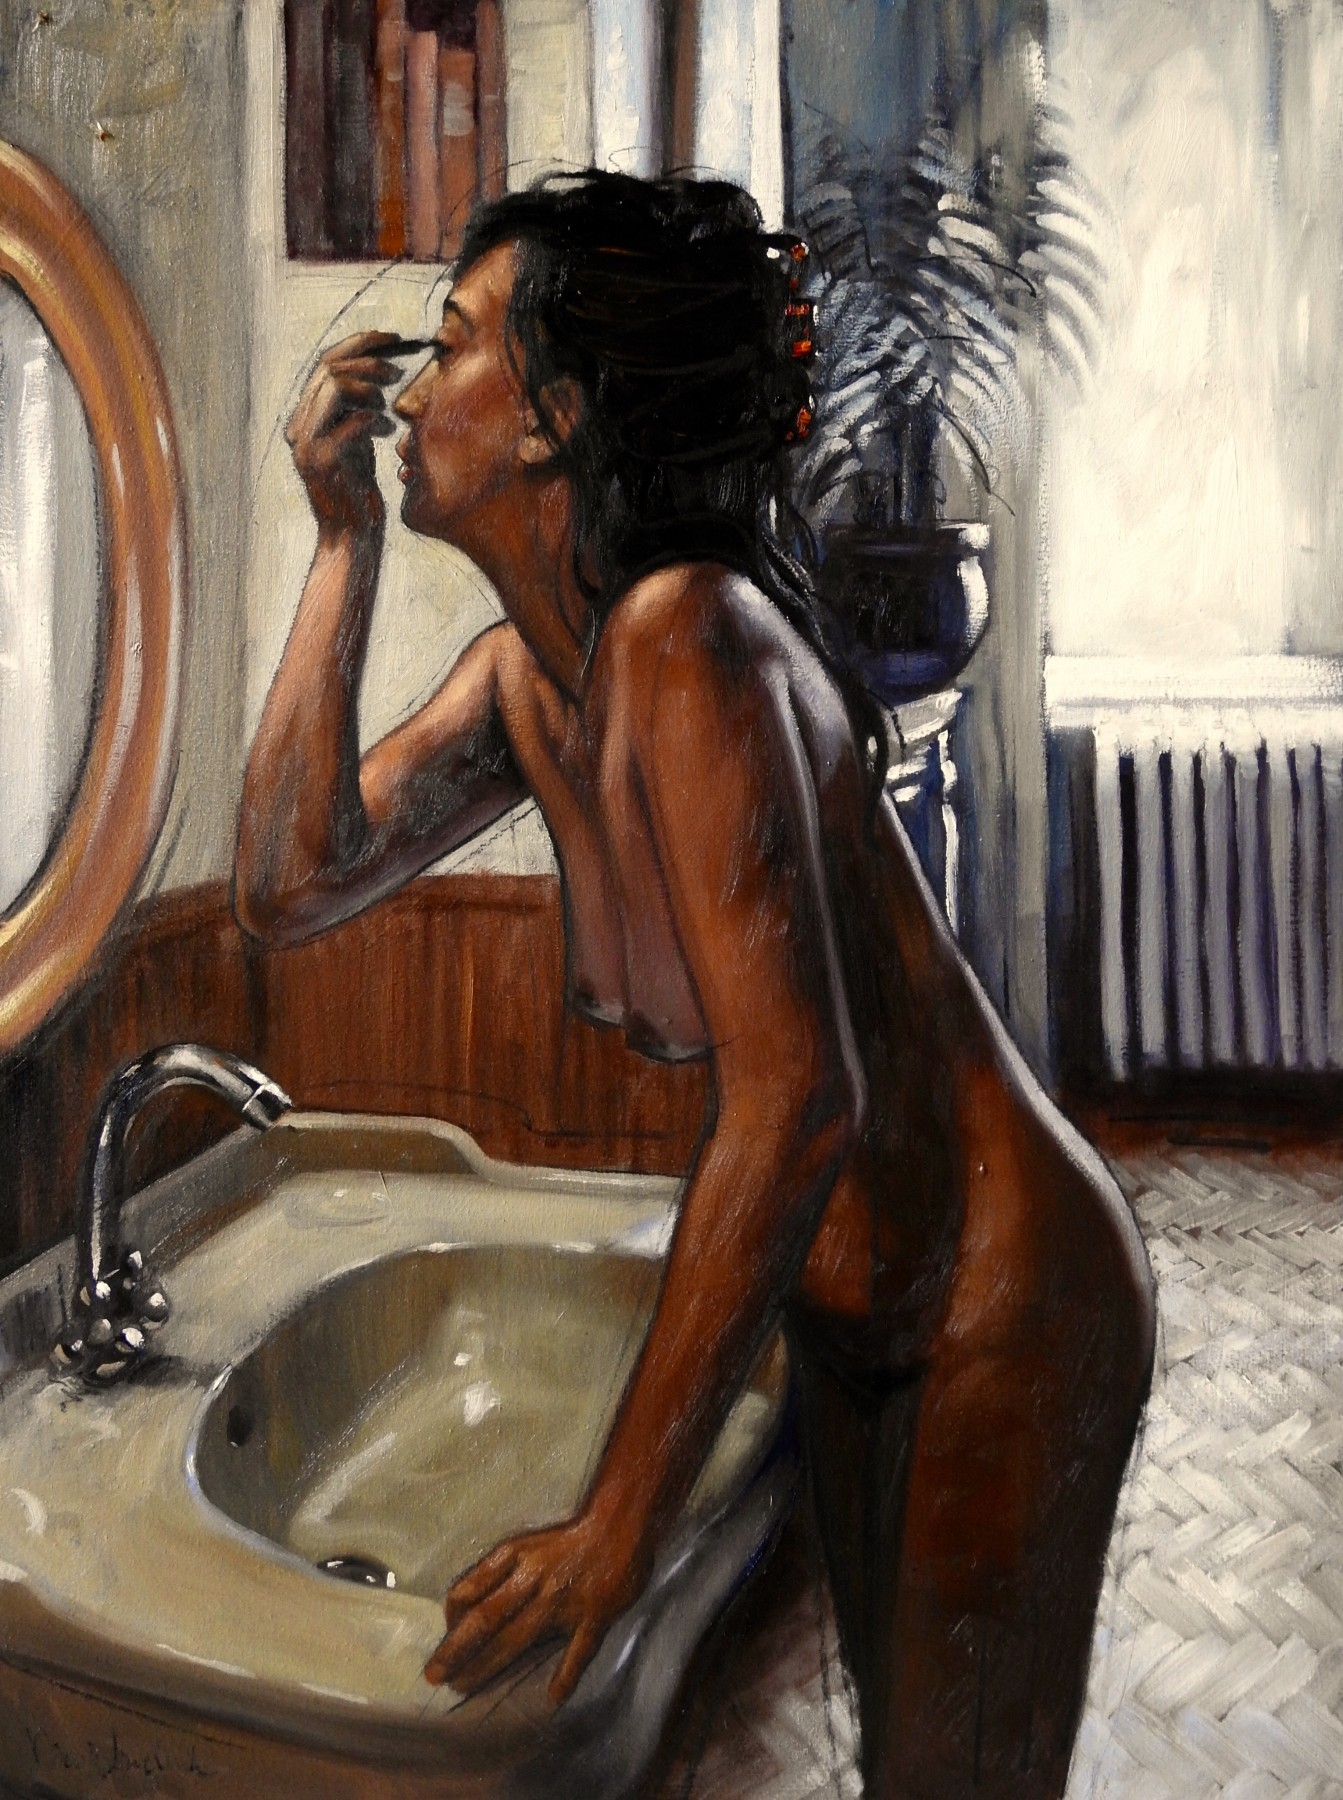 Woman Putting Her Make-Up On In Bathroom 2018 31x23